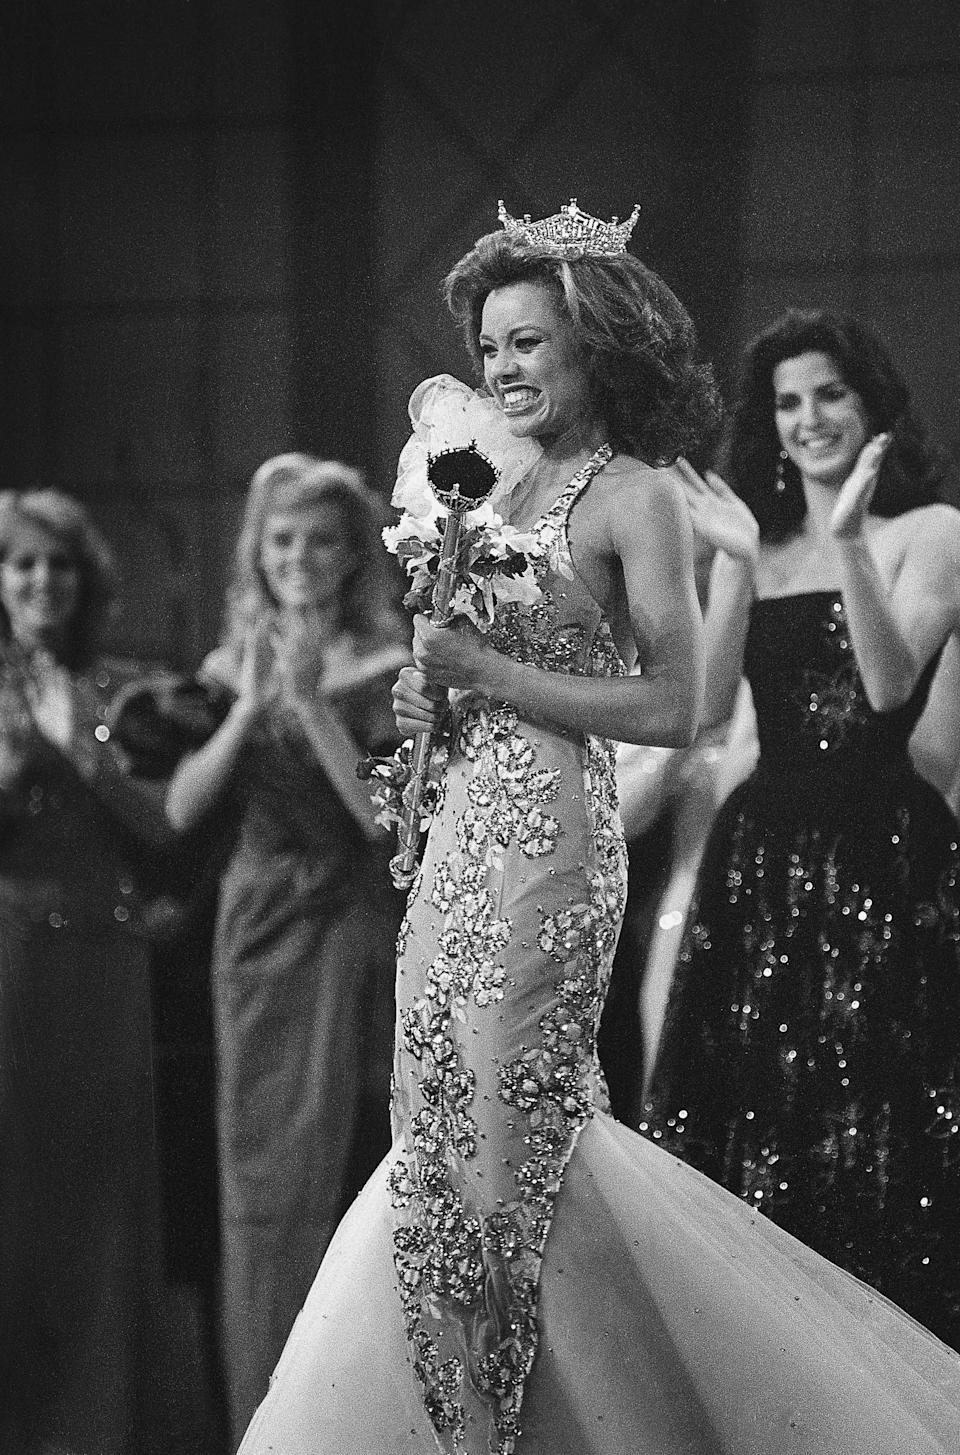 Crowned the new Miss America 1984, Miss New York, Vanessa L. Williams beams as she is applauded by runners-up Miss Virginia, Lisa Aliff (left), and Miss Ohio, Pamela Rigas (right). Williams is the first black woman to have won the crown in the pageant's 63-year history.